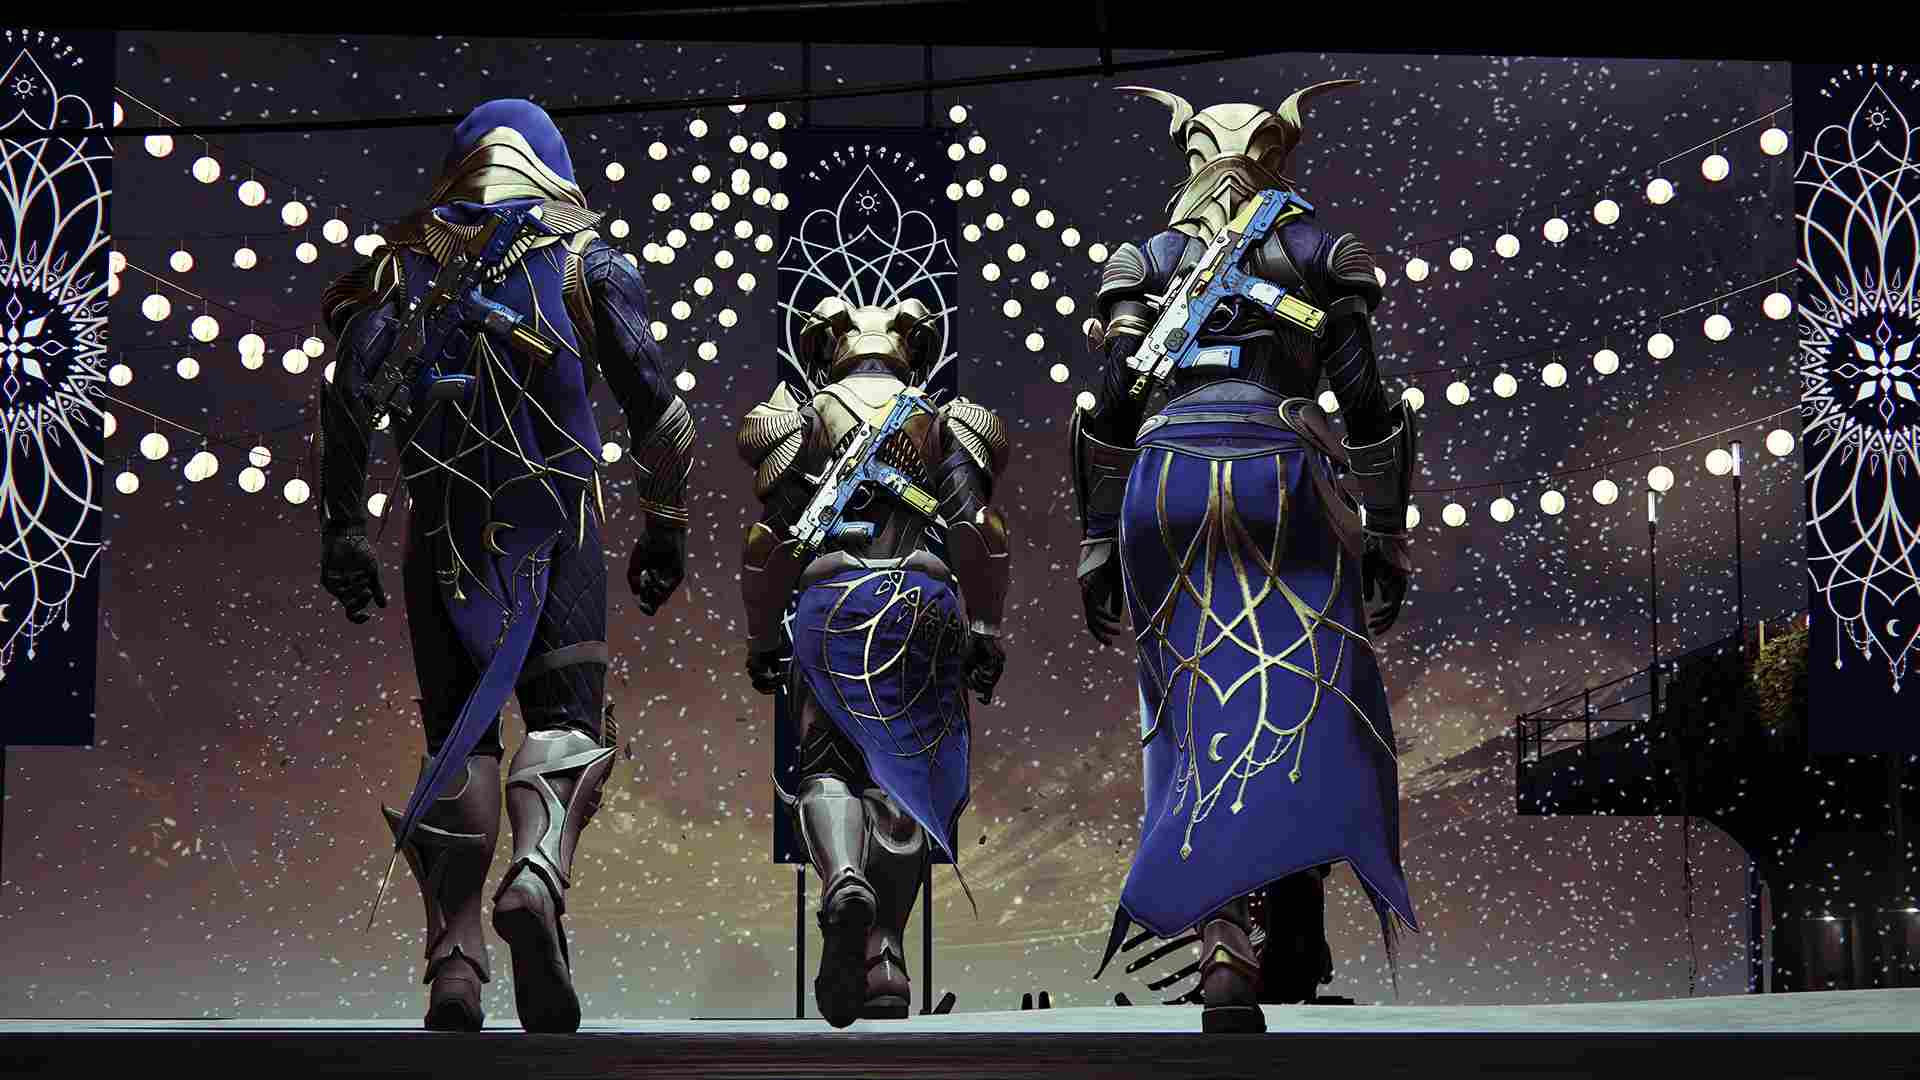 destiny 2, flash of inspiration, how to get, dawning